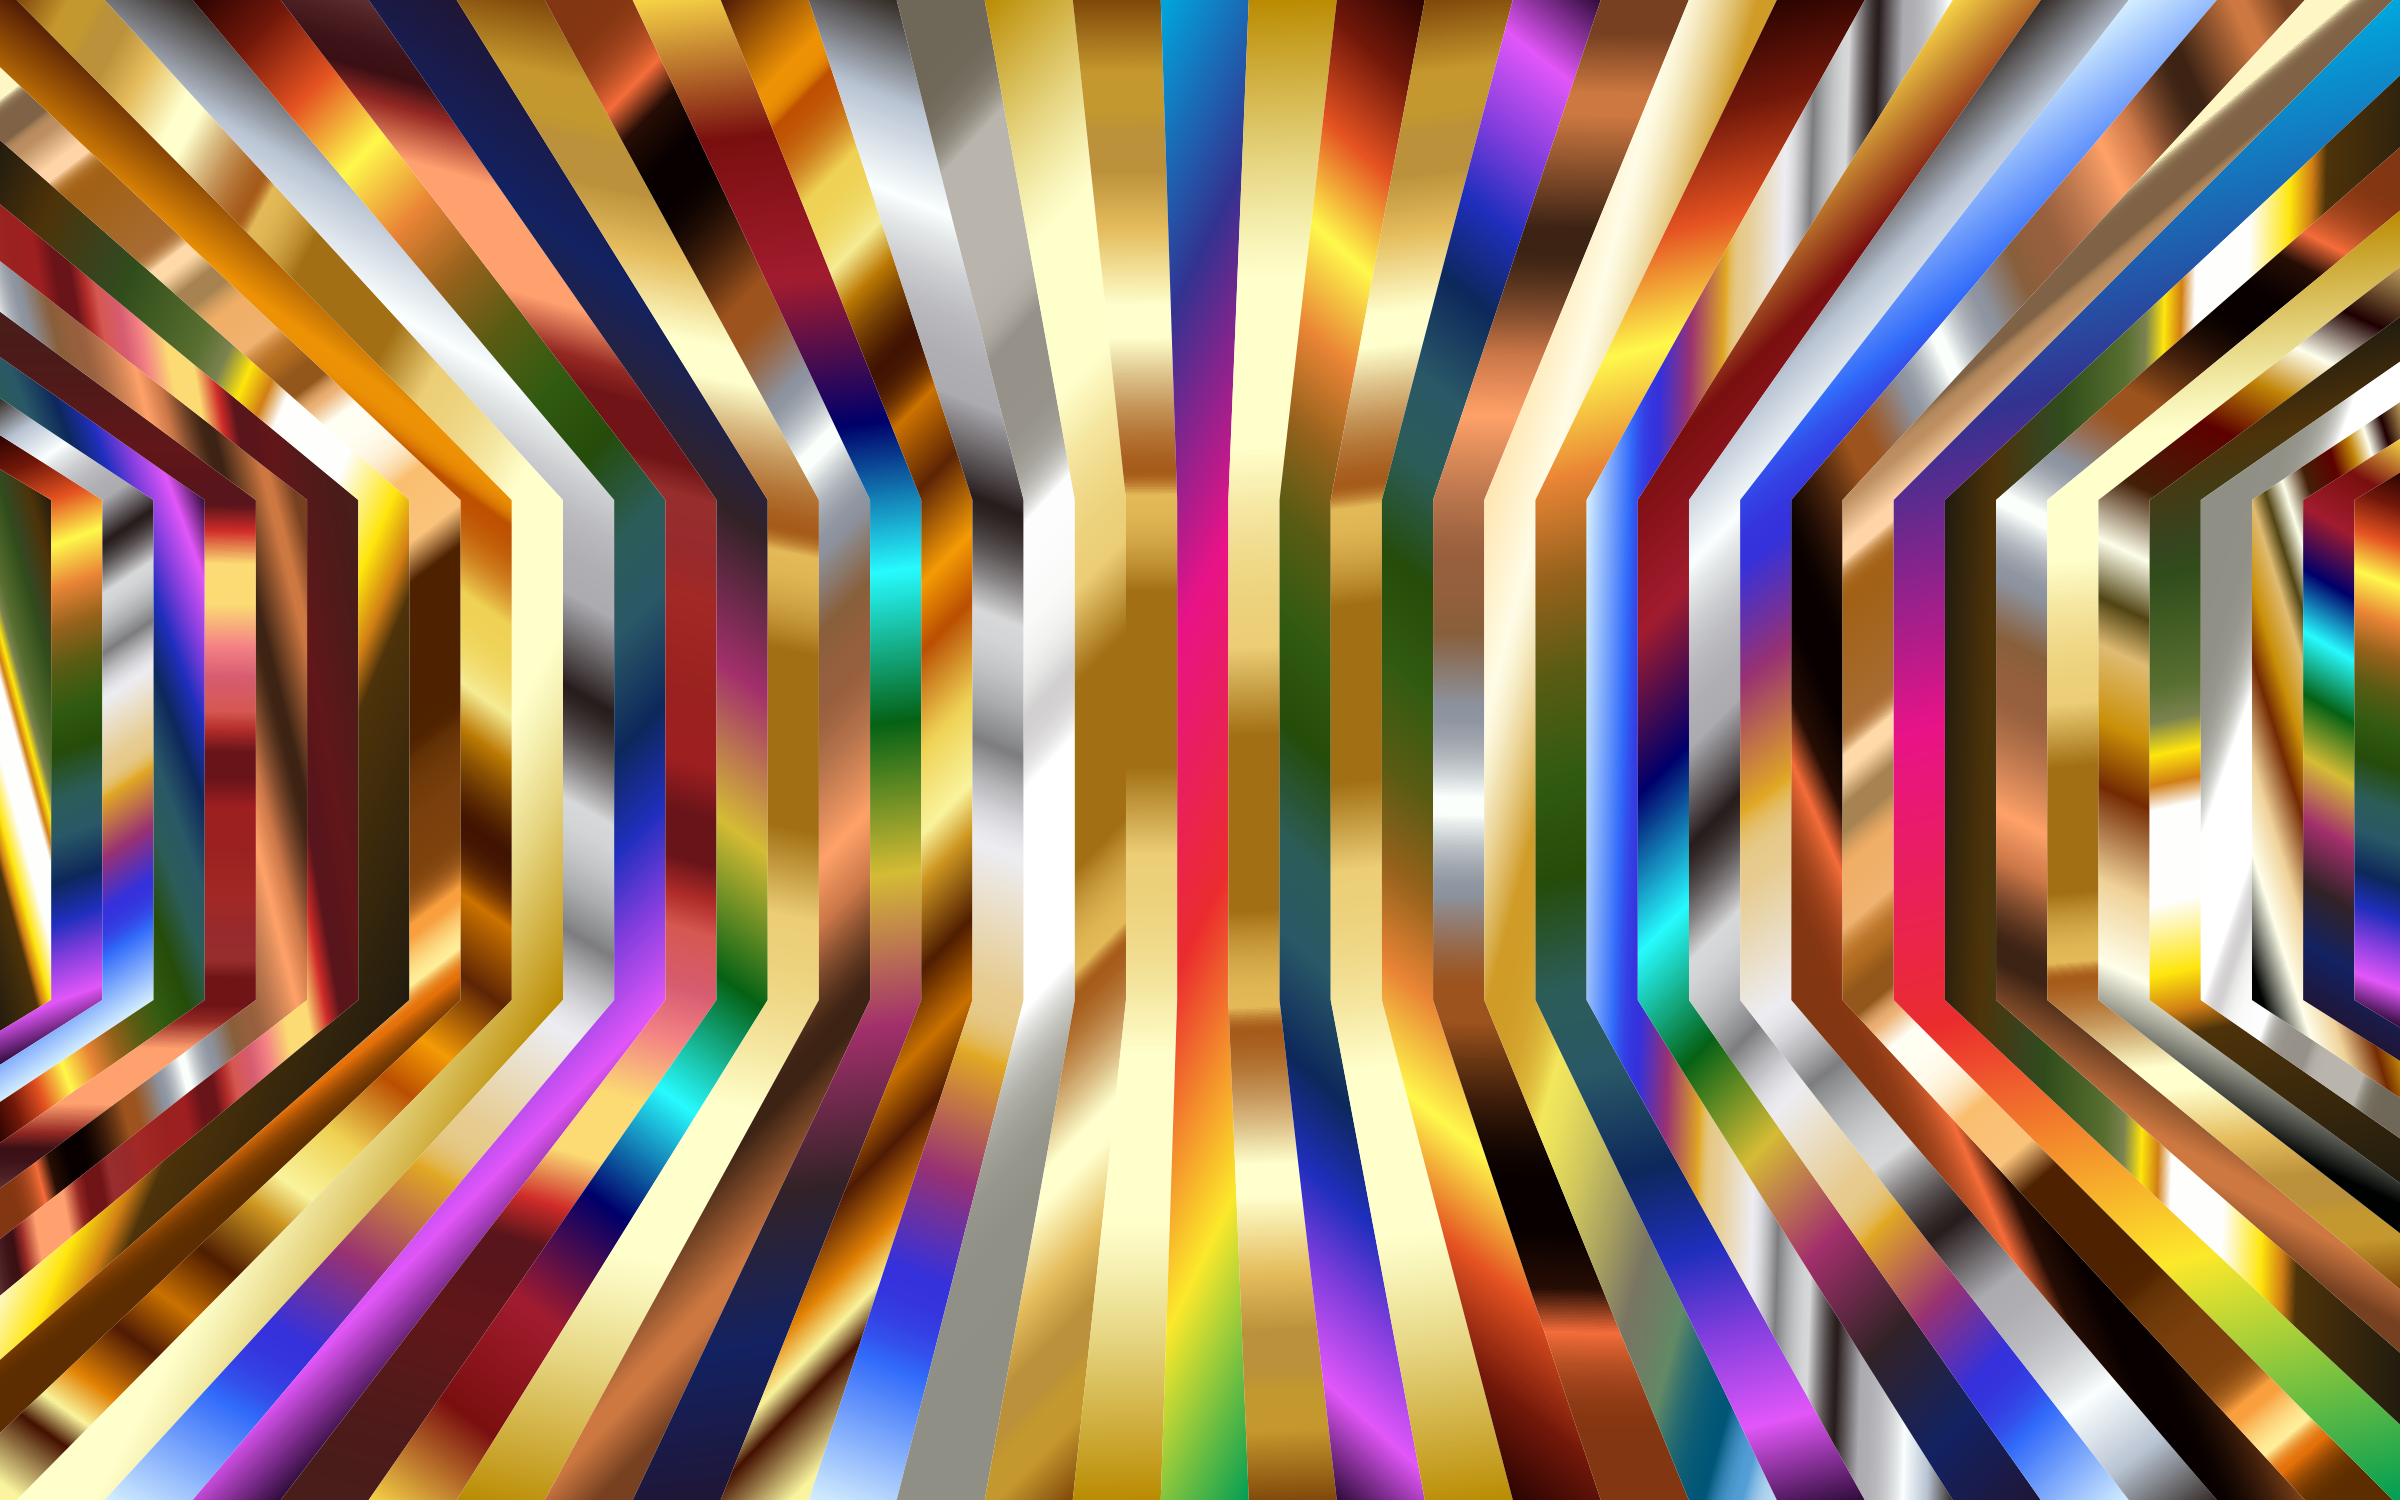 Perspective Psychedelic Vertical Stripes by GDJ